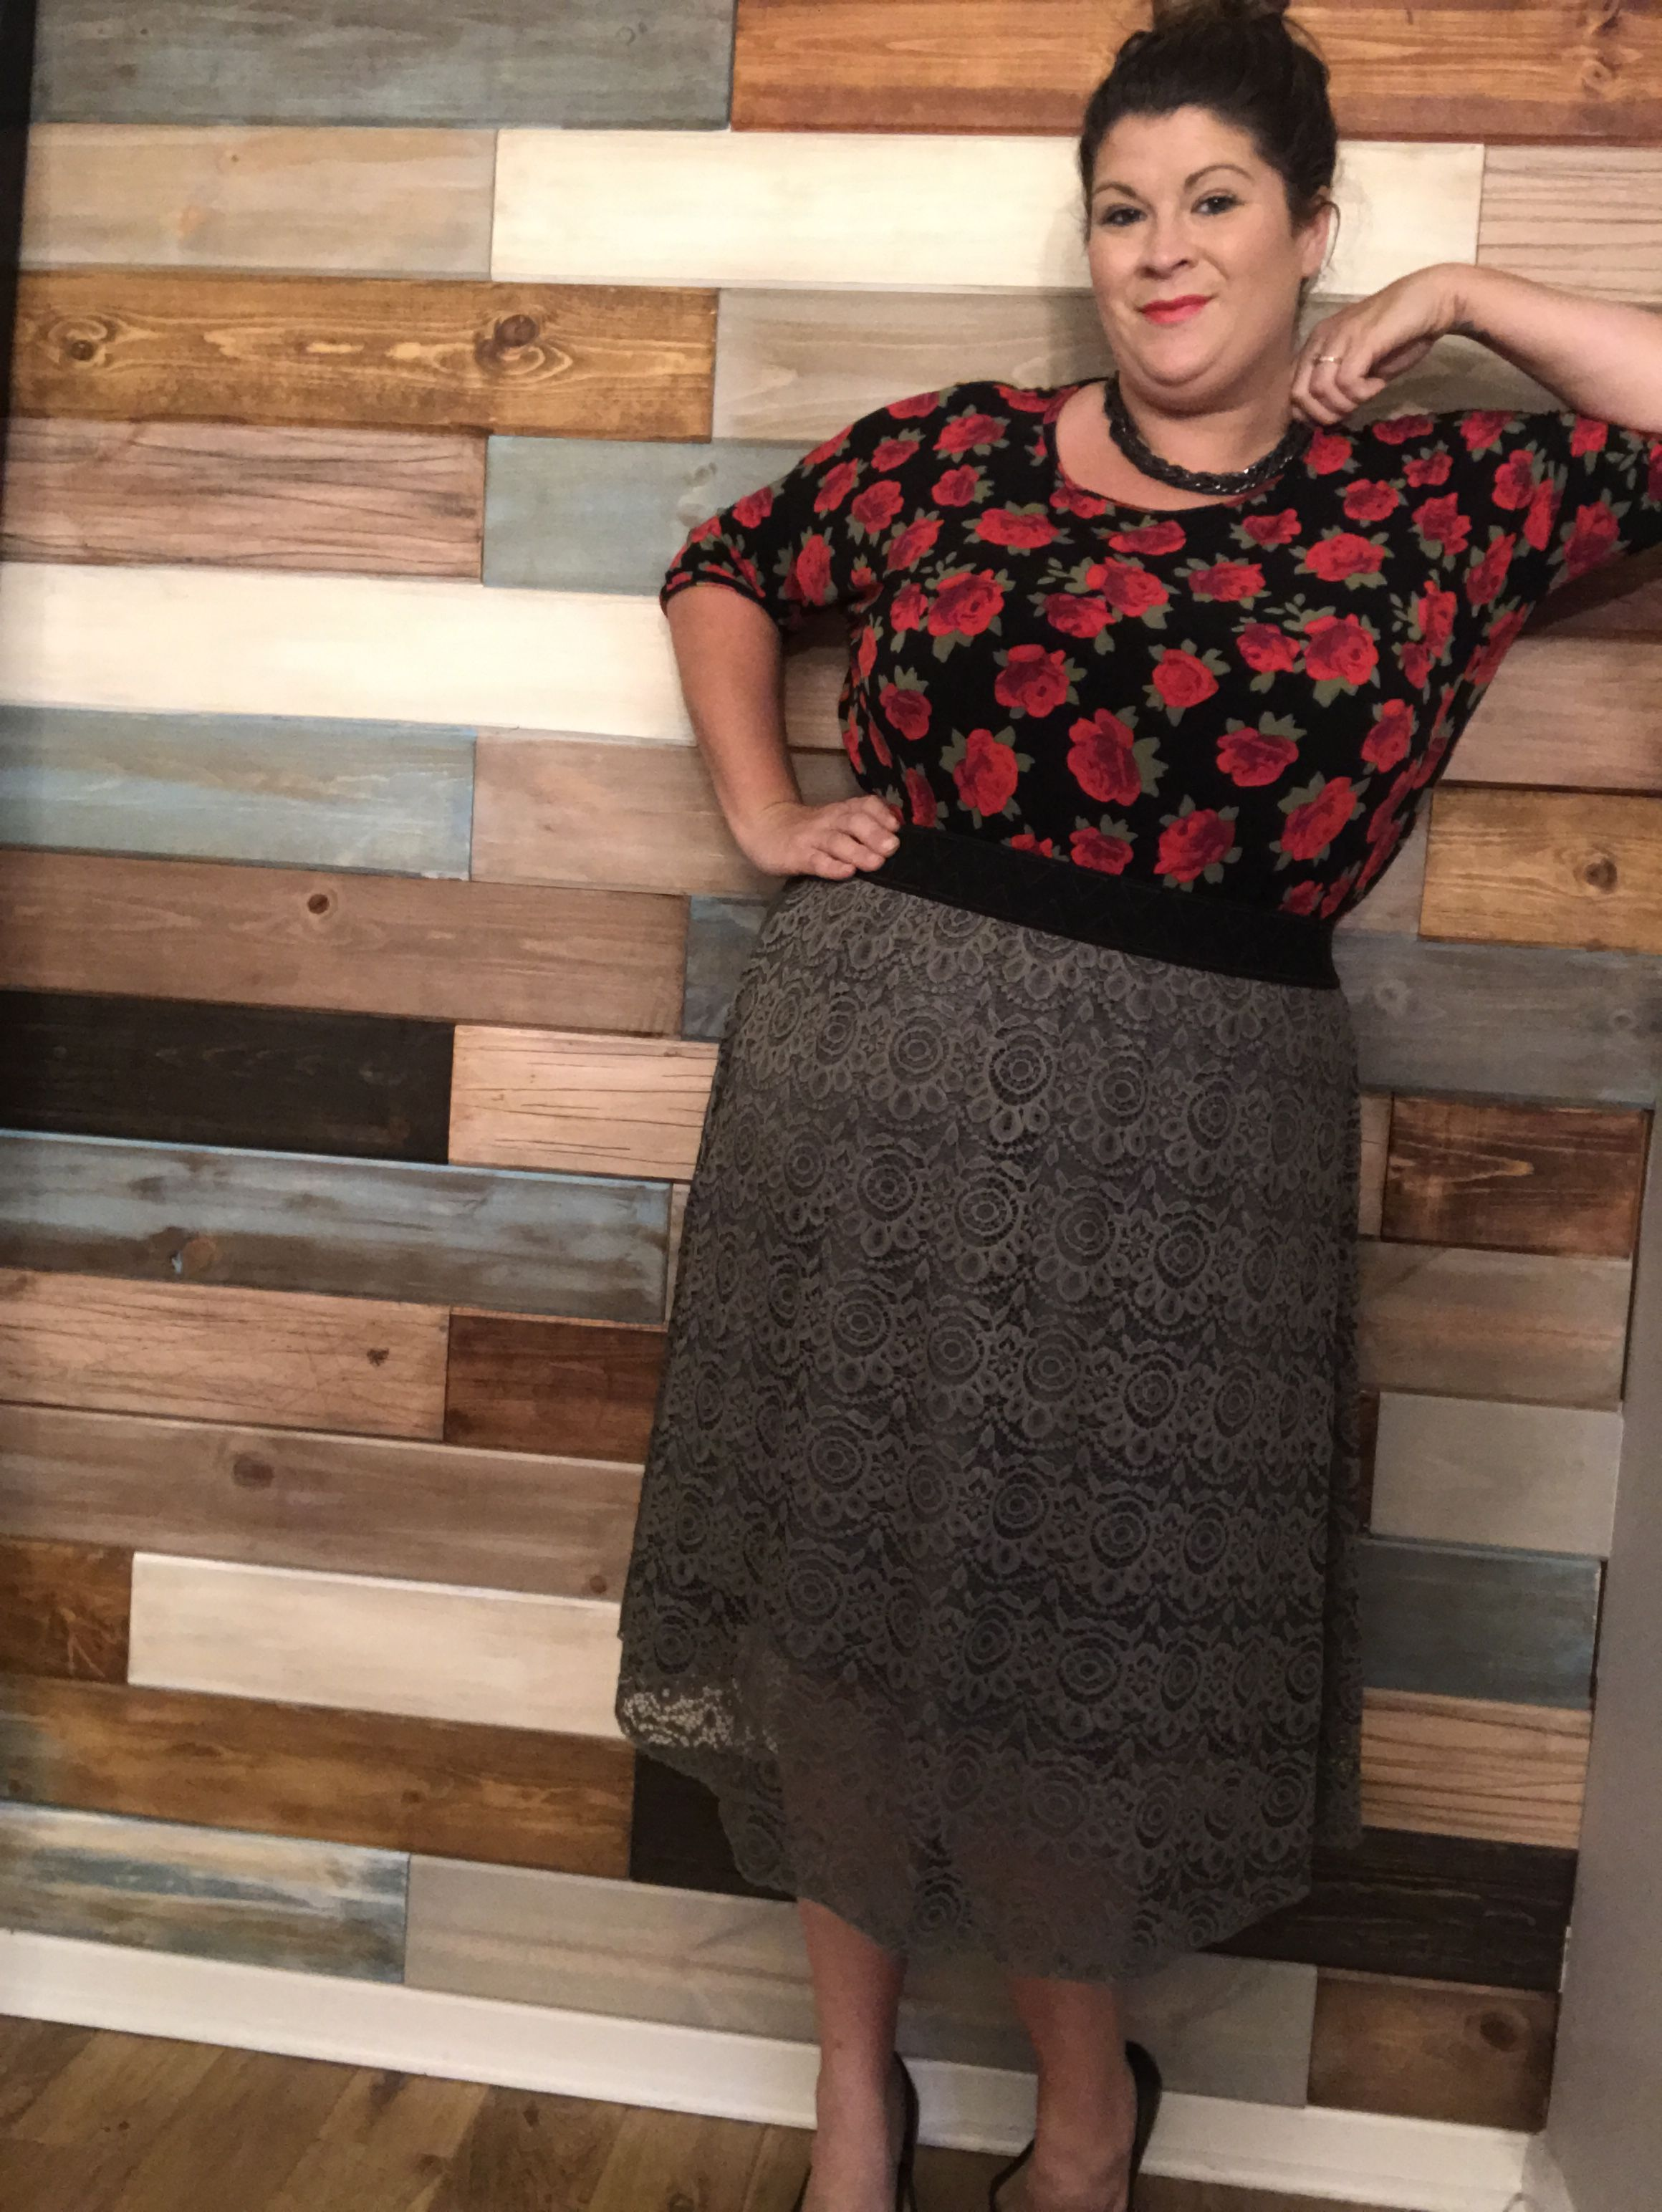 dad17941985483 Ahh I love this look! Lularoe plus size fashion! Irma tucked into a ...